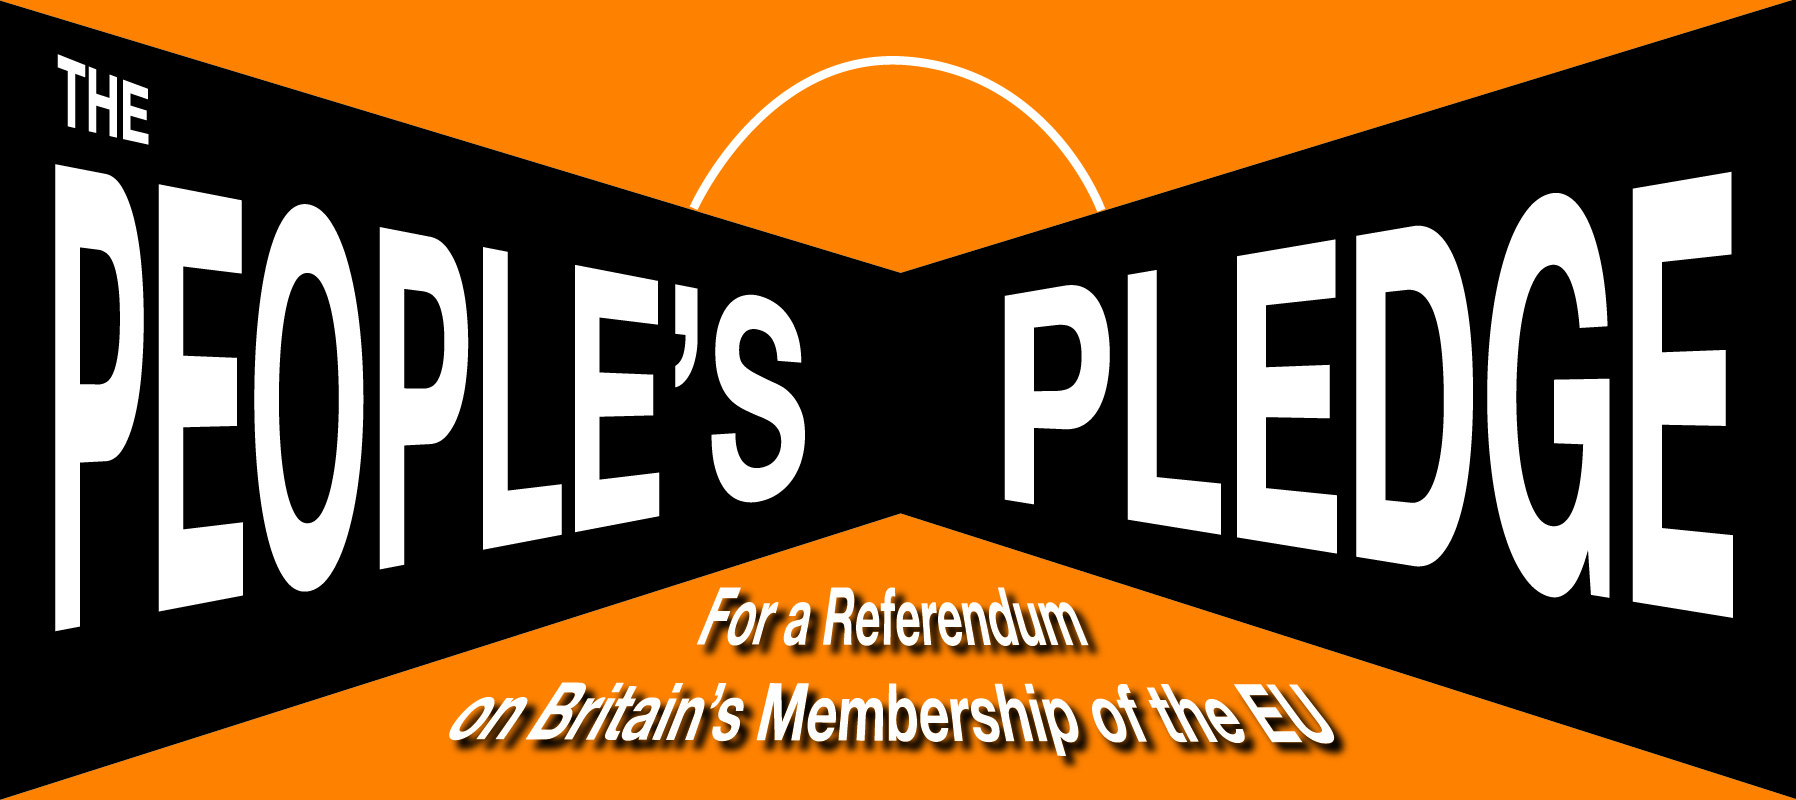 People's Pledge for a referendum